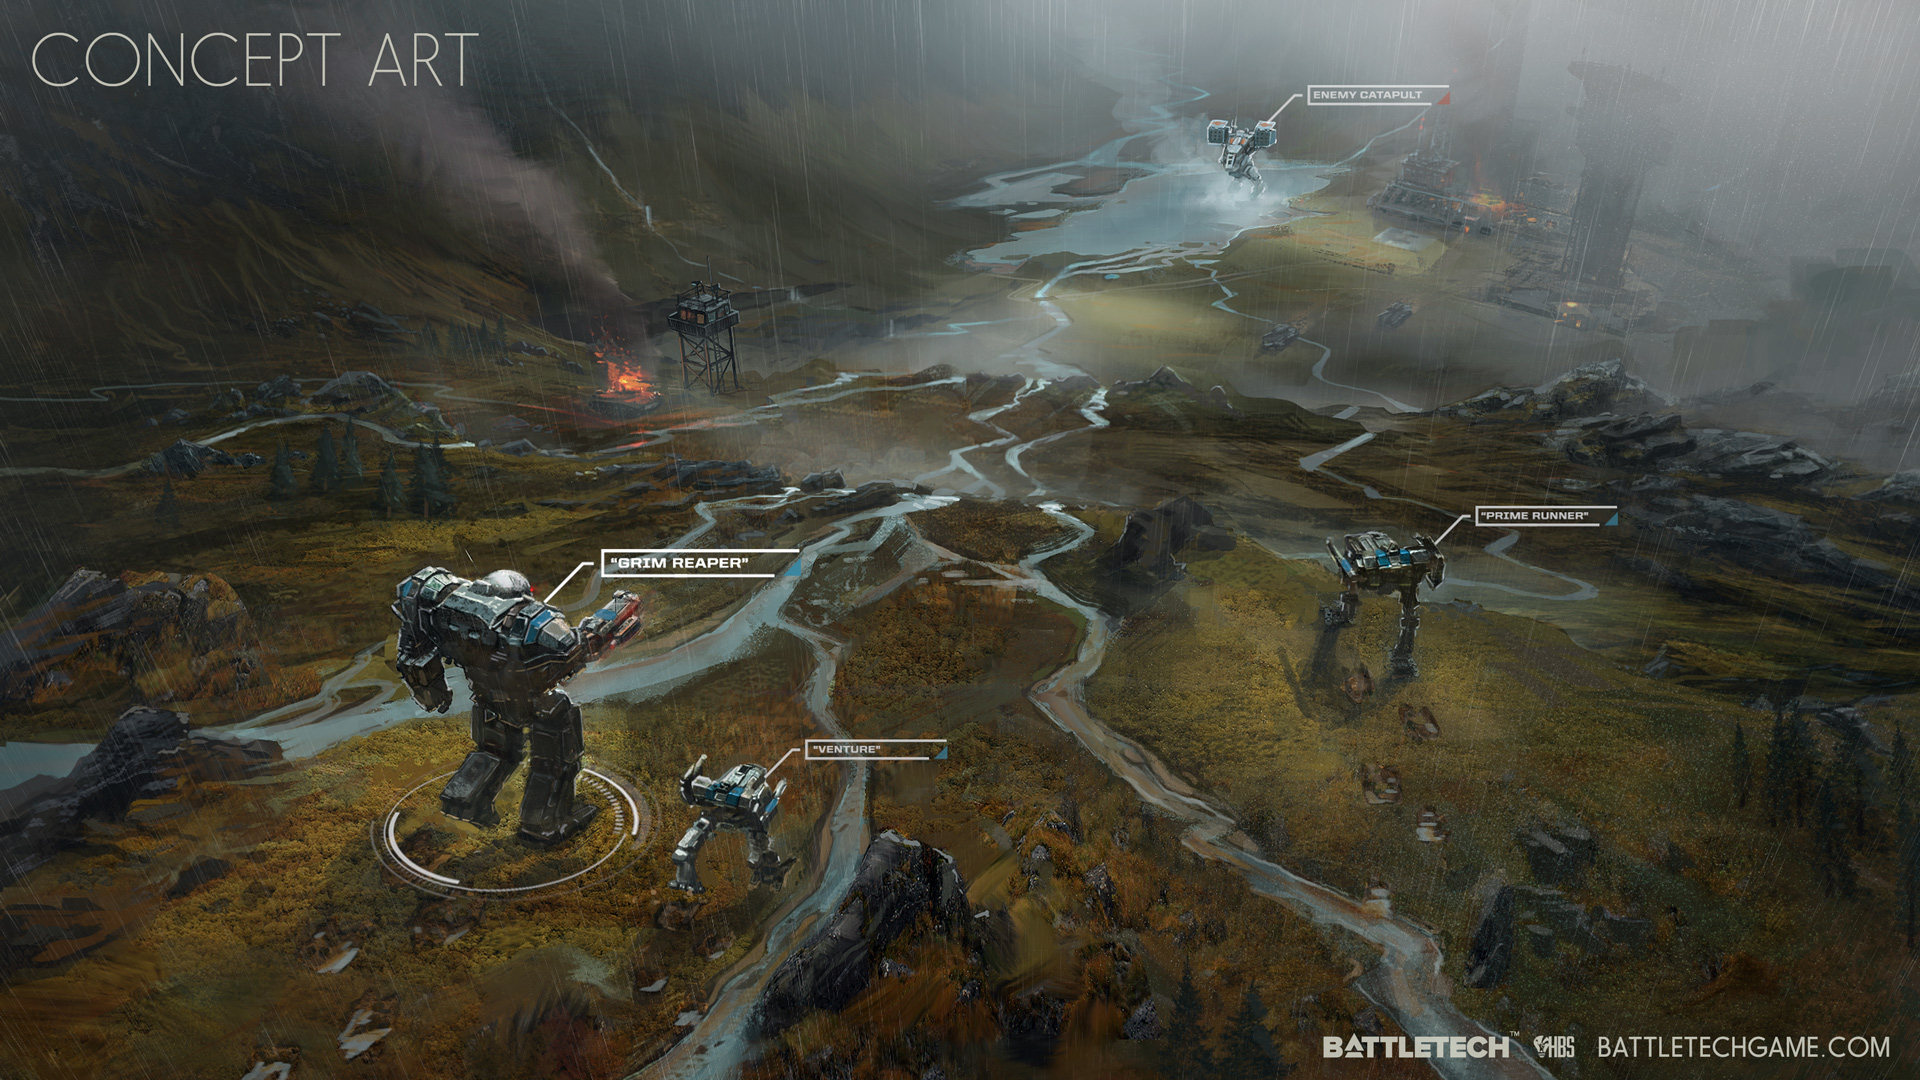 BattleTech HD Wallpapers That Need to Be Your New